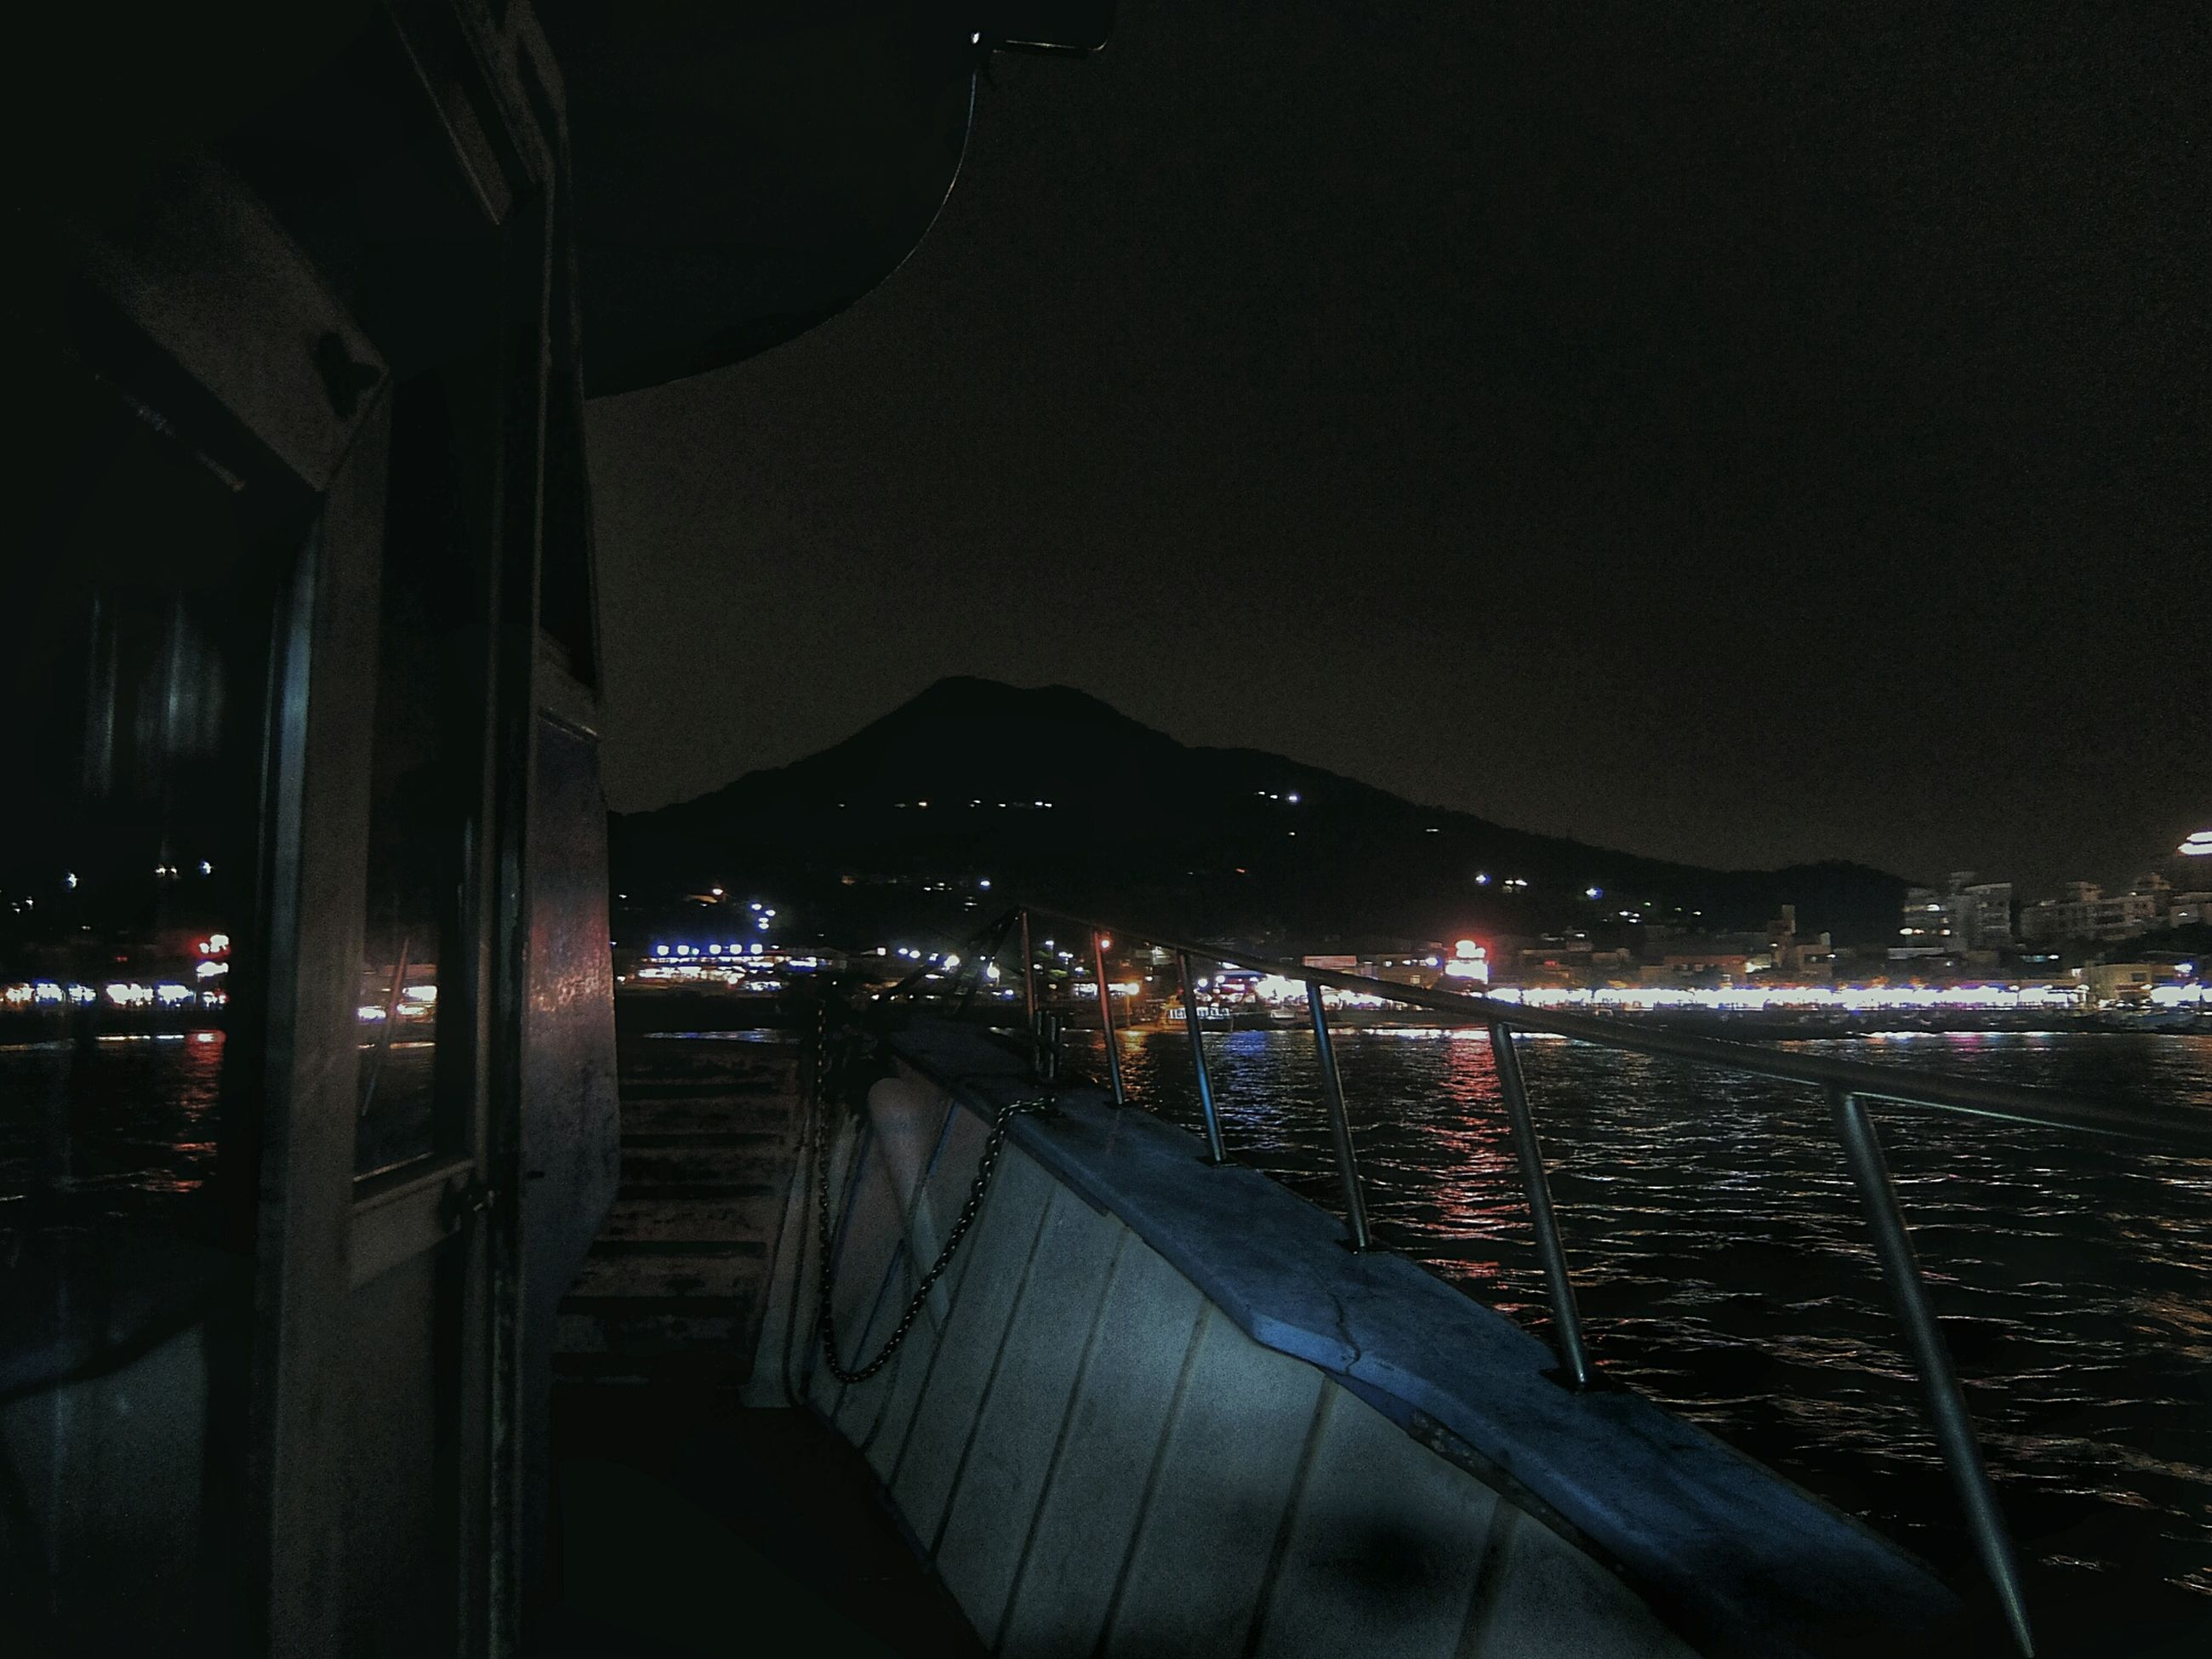 Boat in sea against sky at night